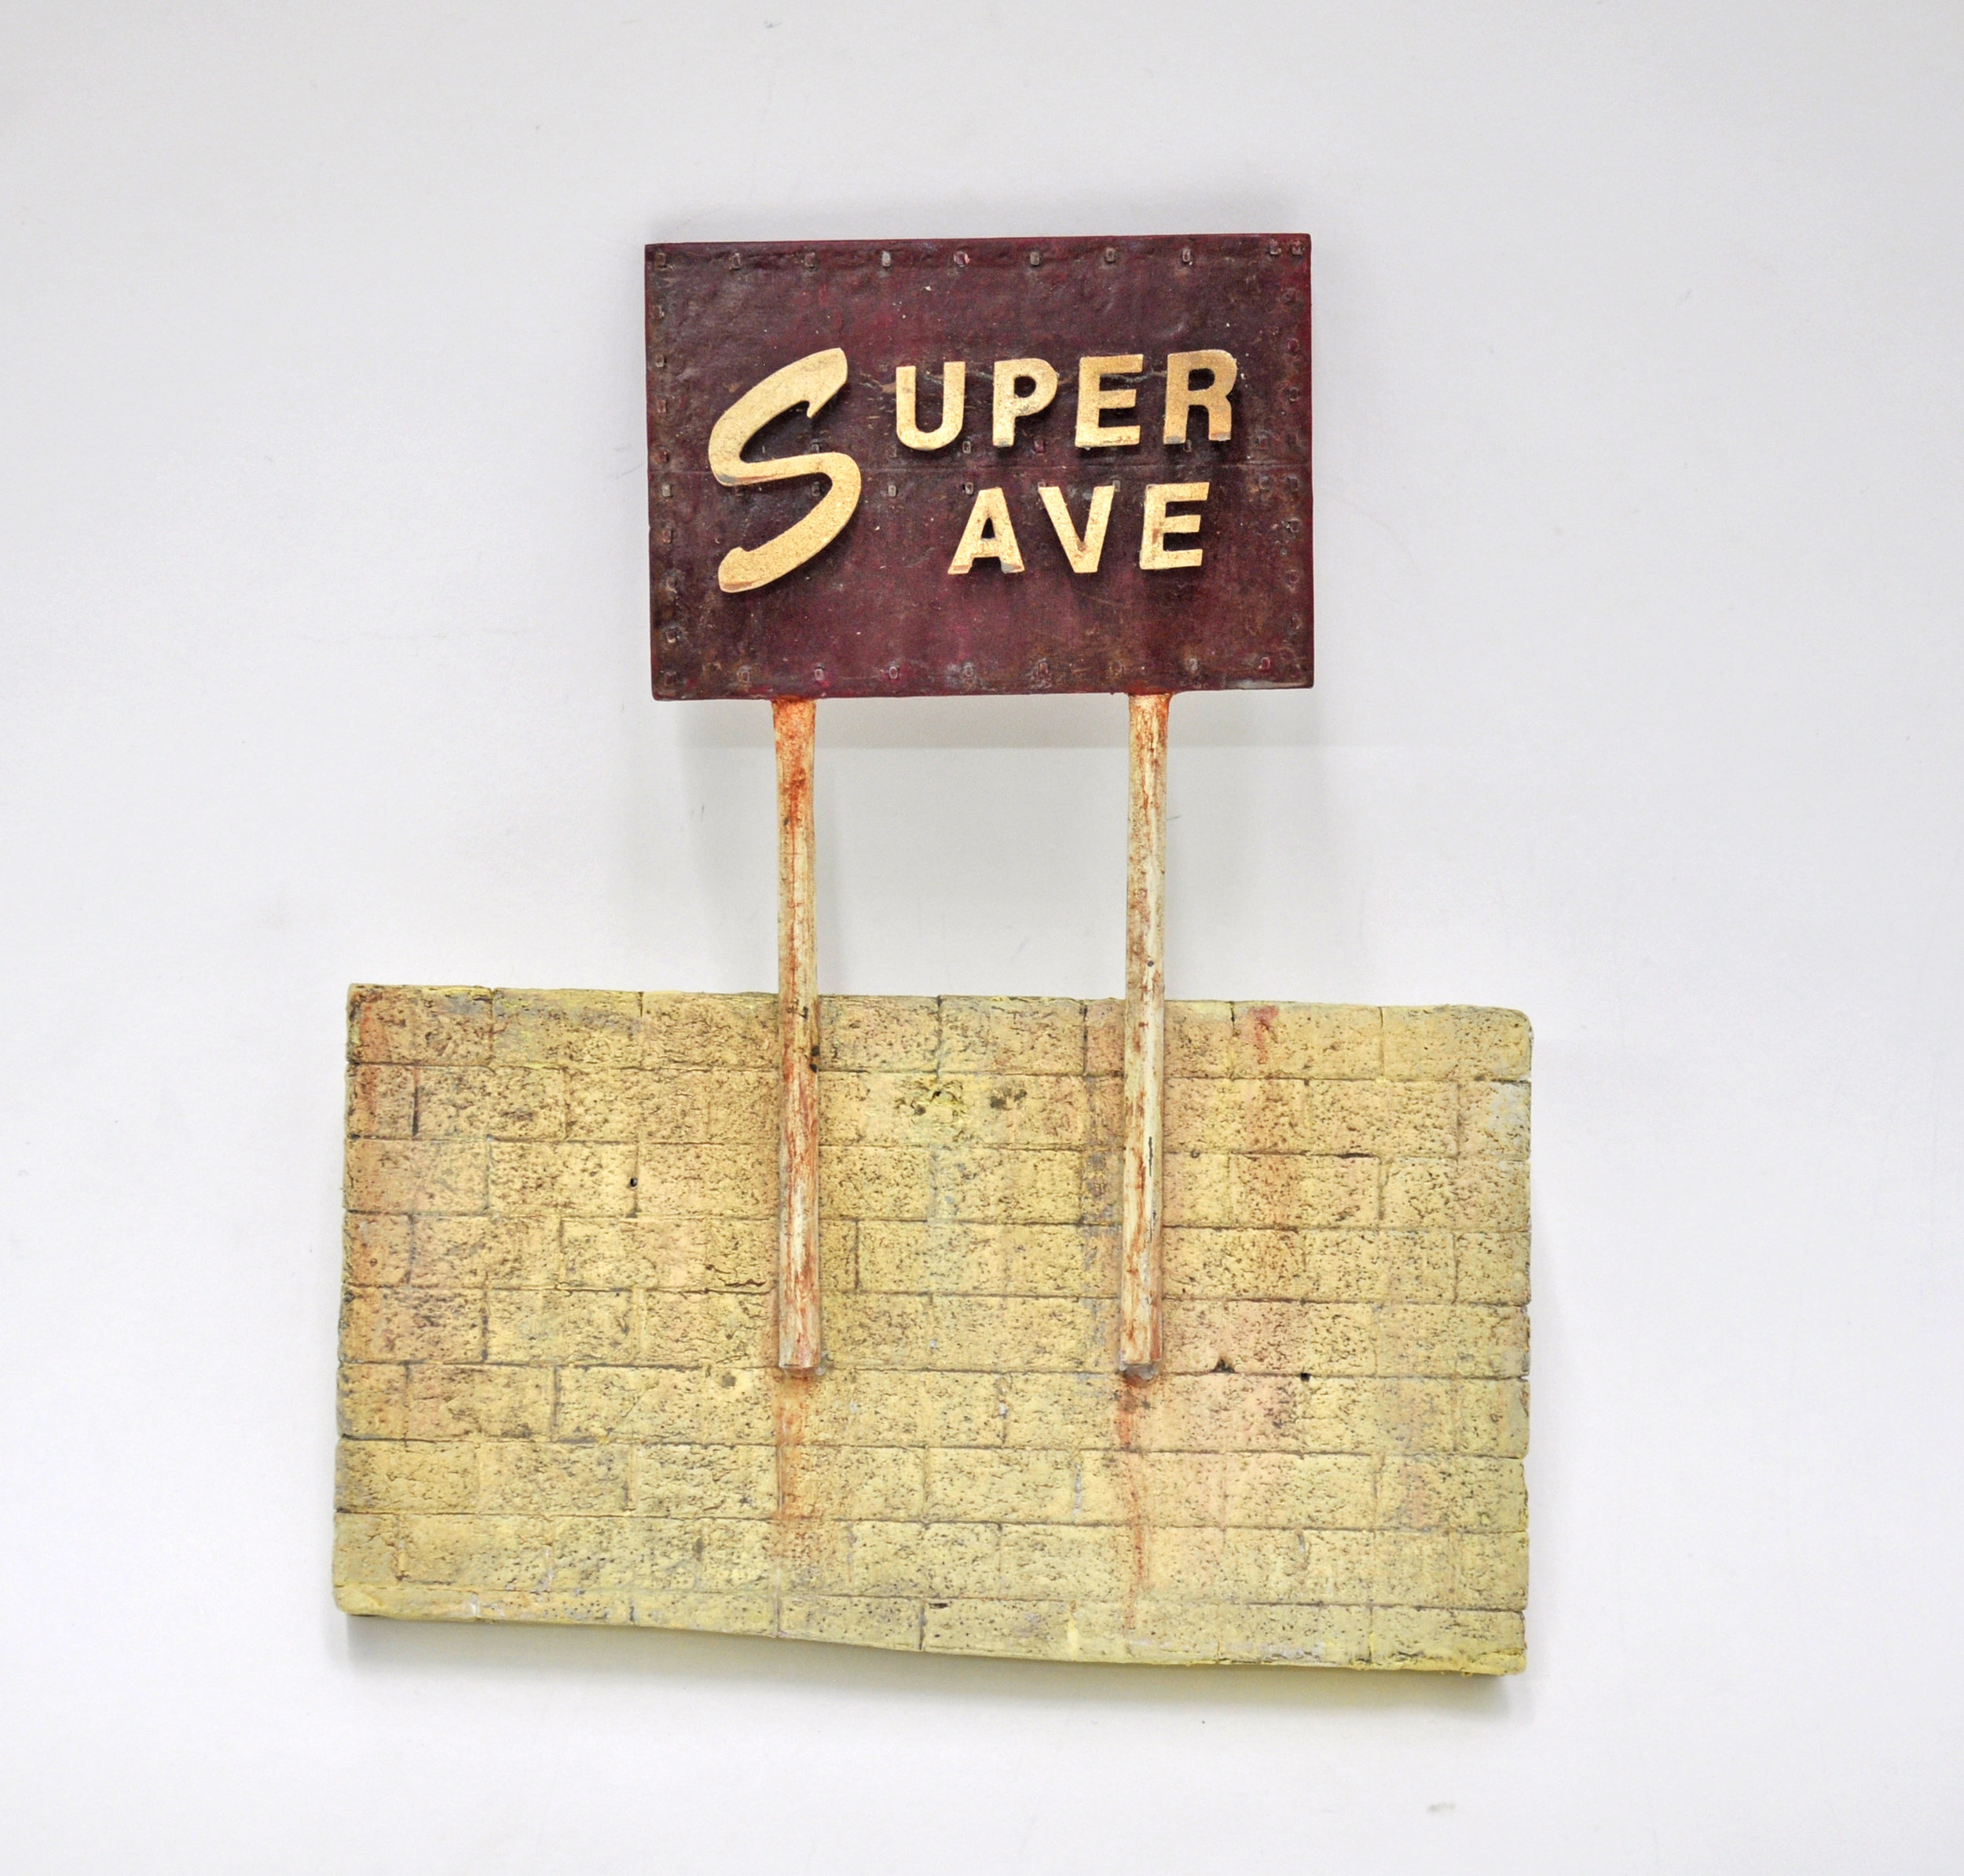 Malcolm Kenter, Super Save, 2019, Enamel and Latex on Plastic, Foam, 9 x 8 x 1in